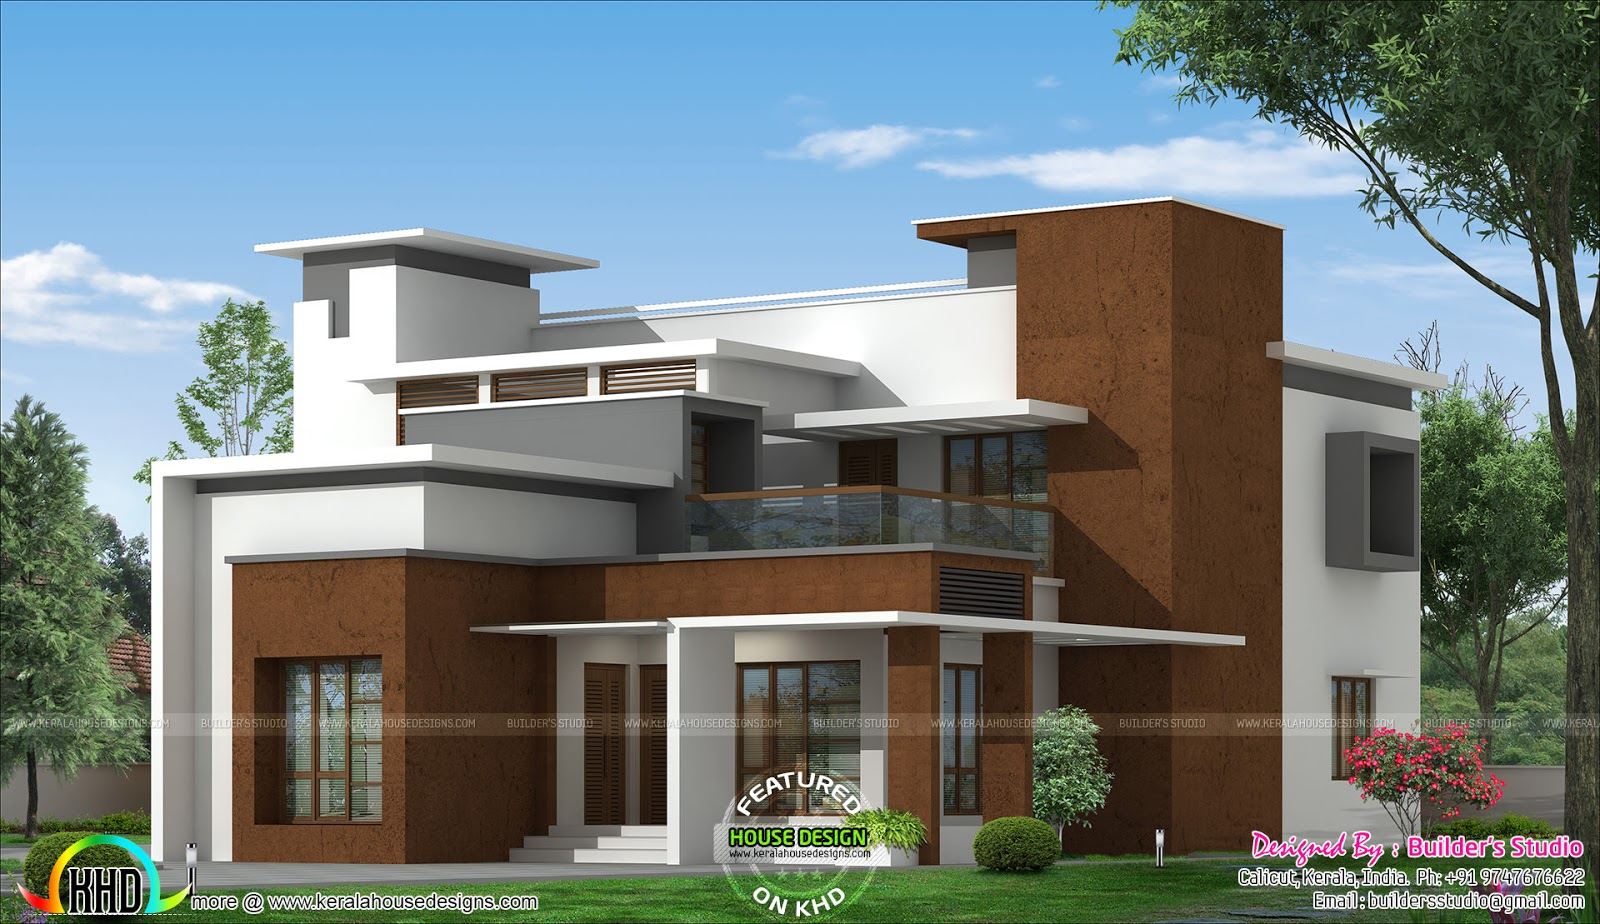 Box type modern home architecture plan kerala home for Modern homes